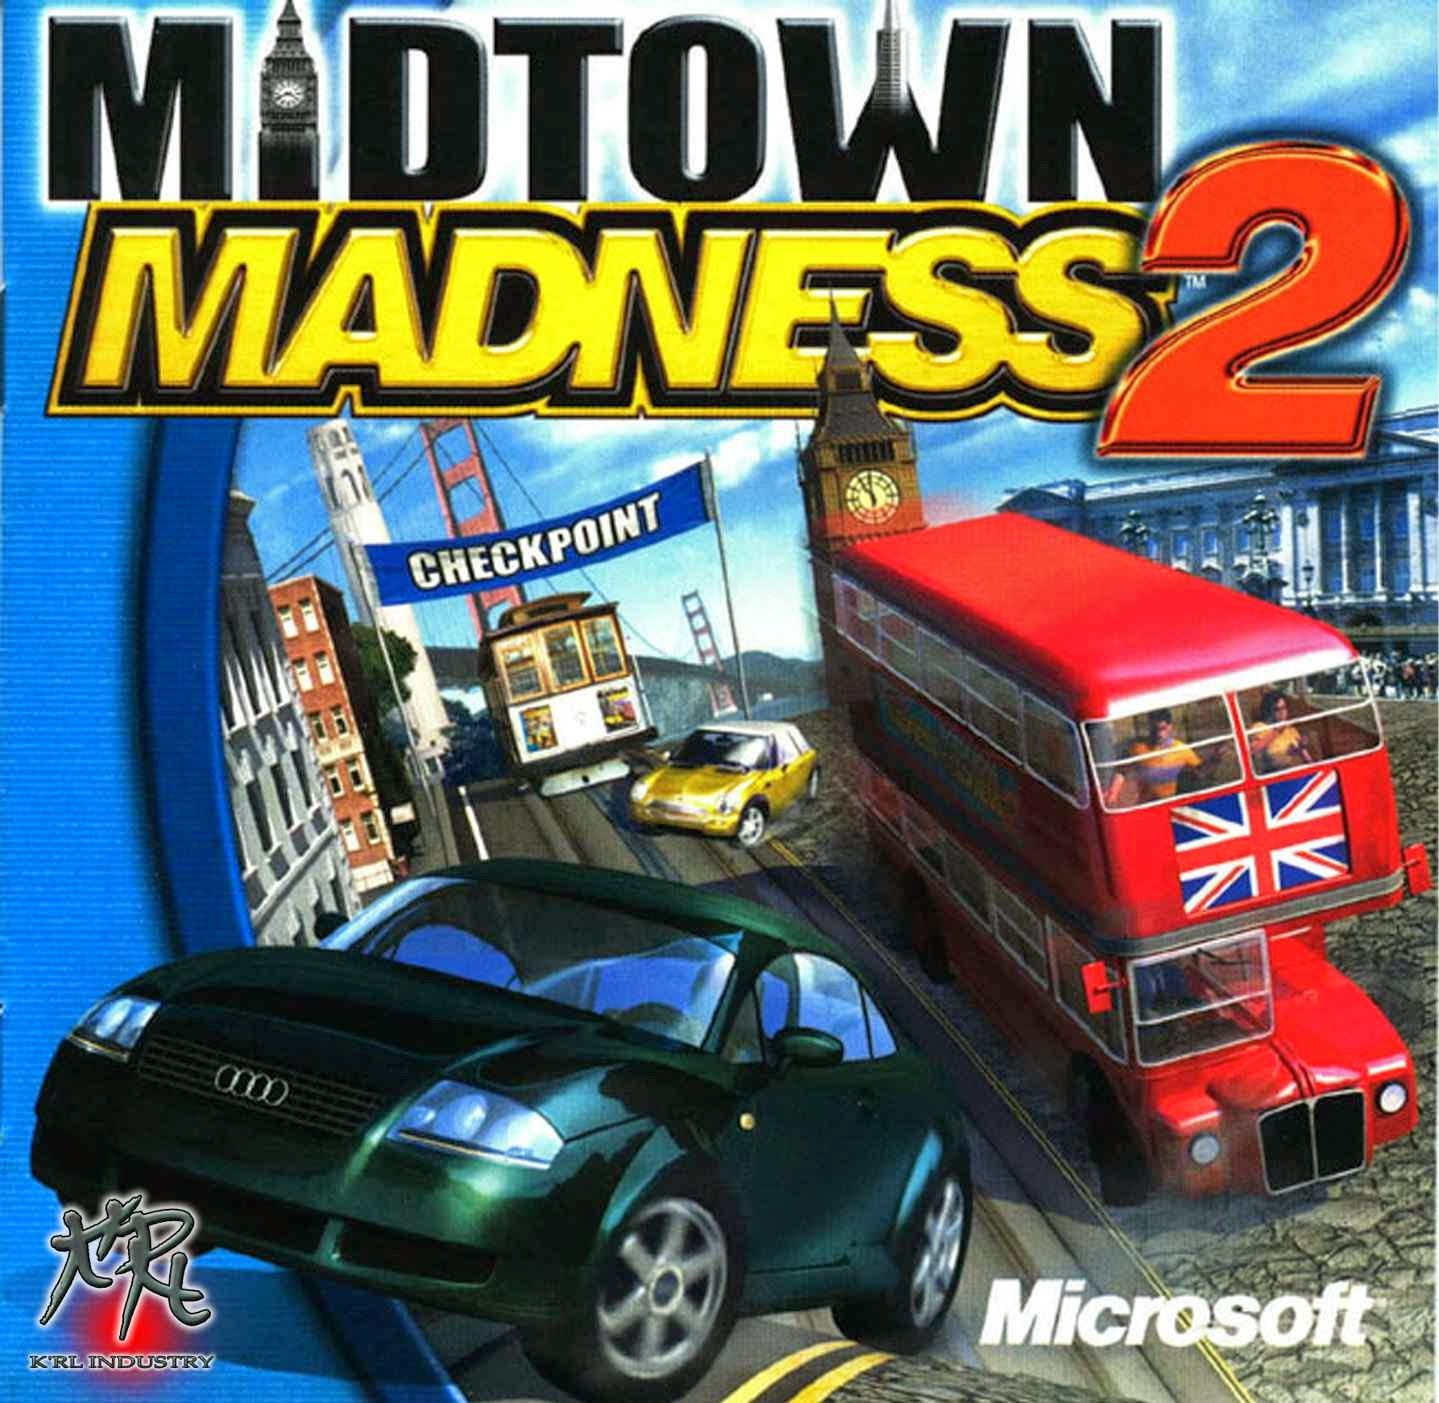 How to run/install midtown madness 2 in windows 10/8. 1/8/7/xp.